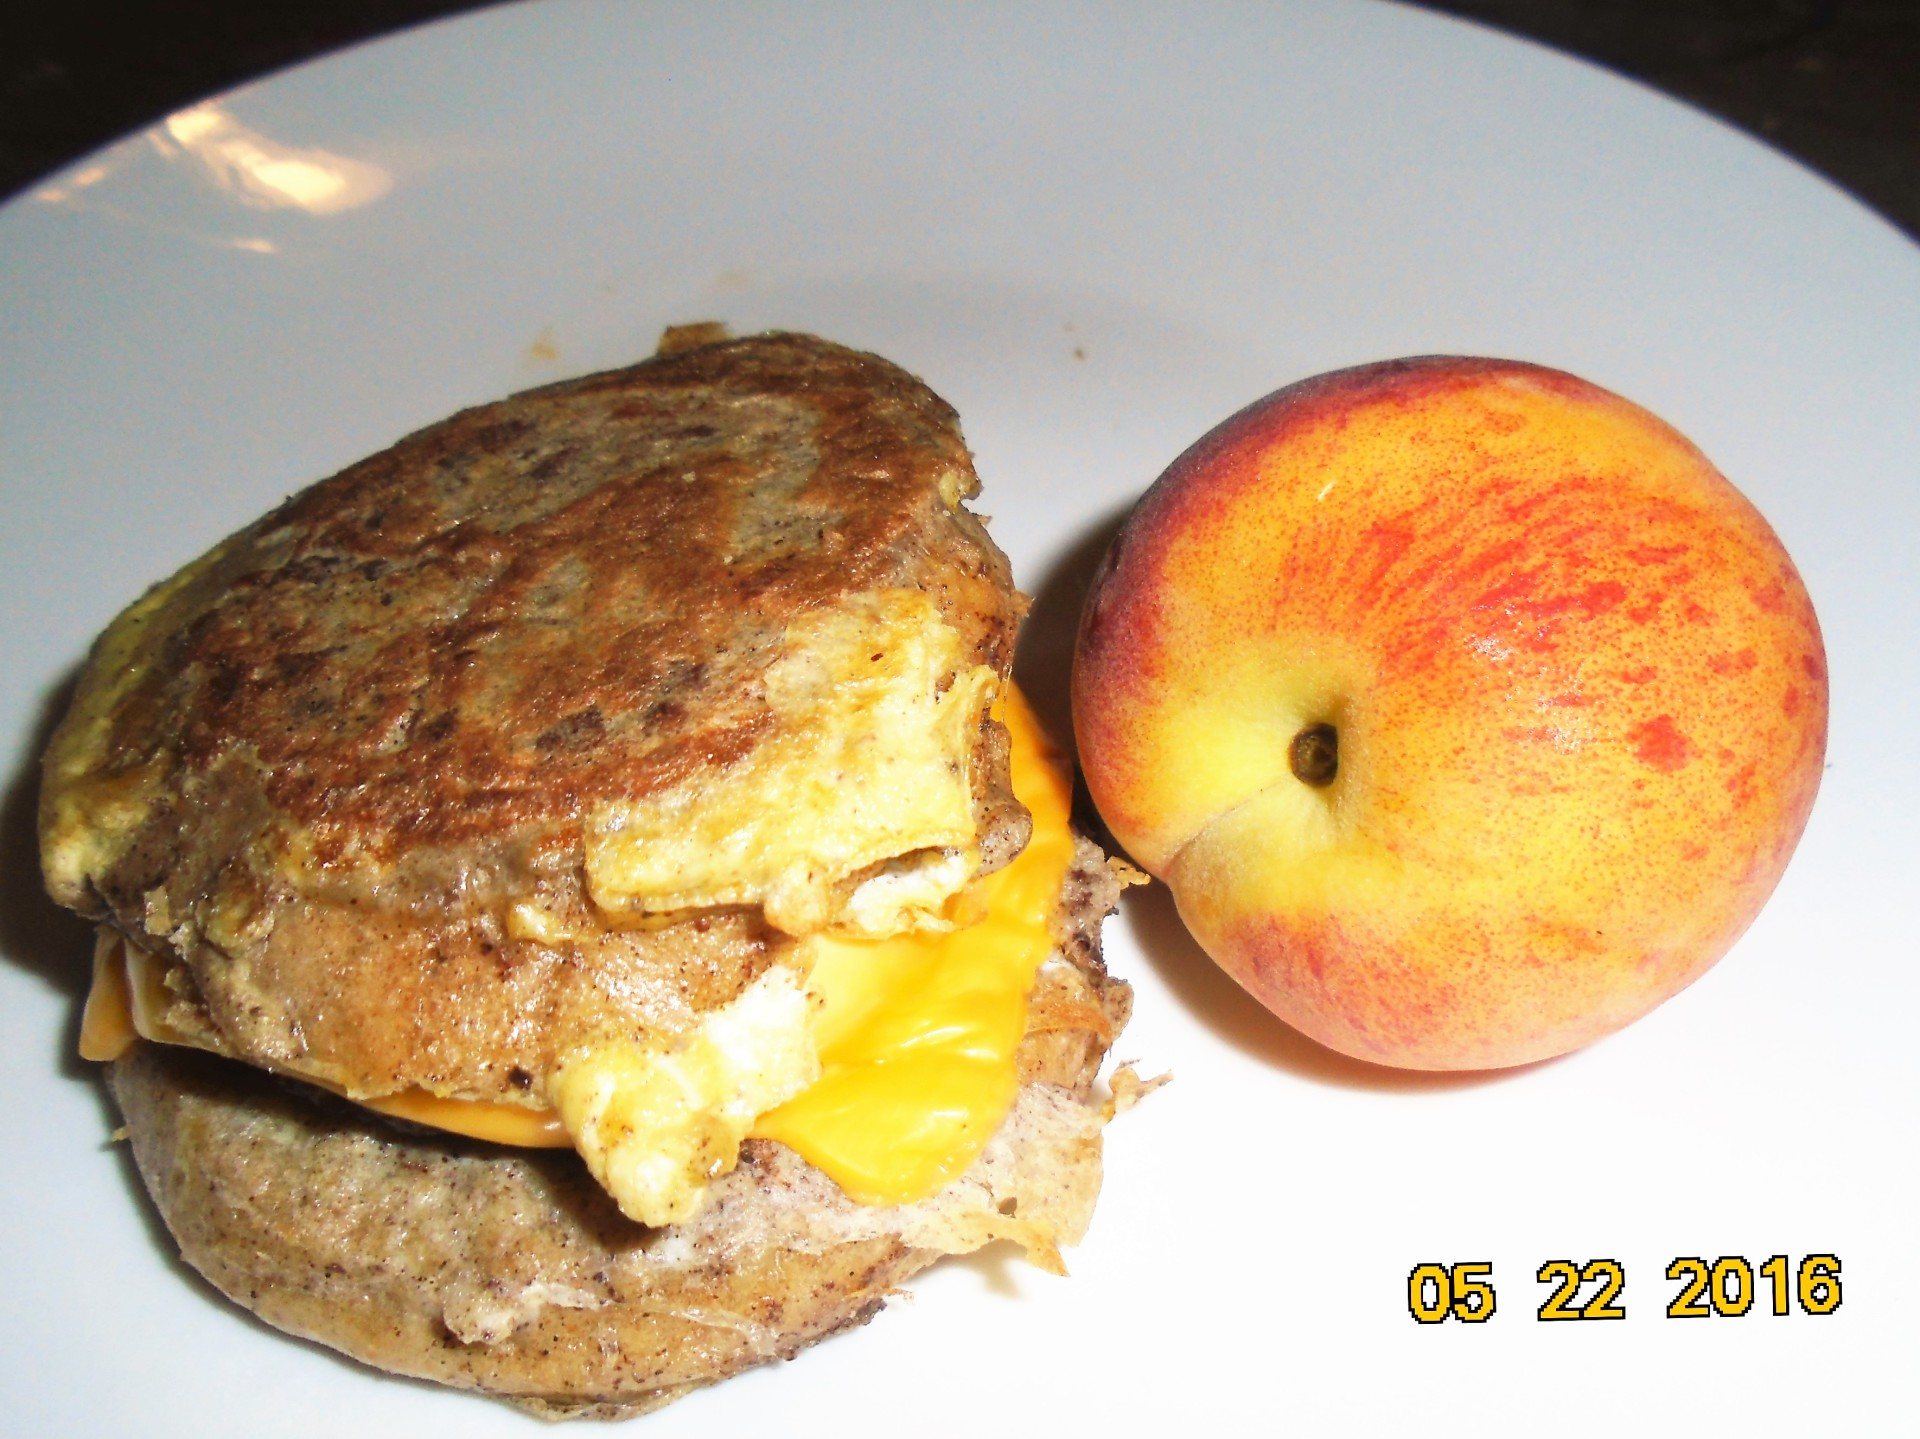 Frenched English Breakfast Muffin